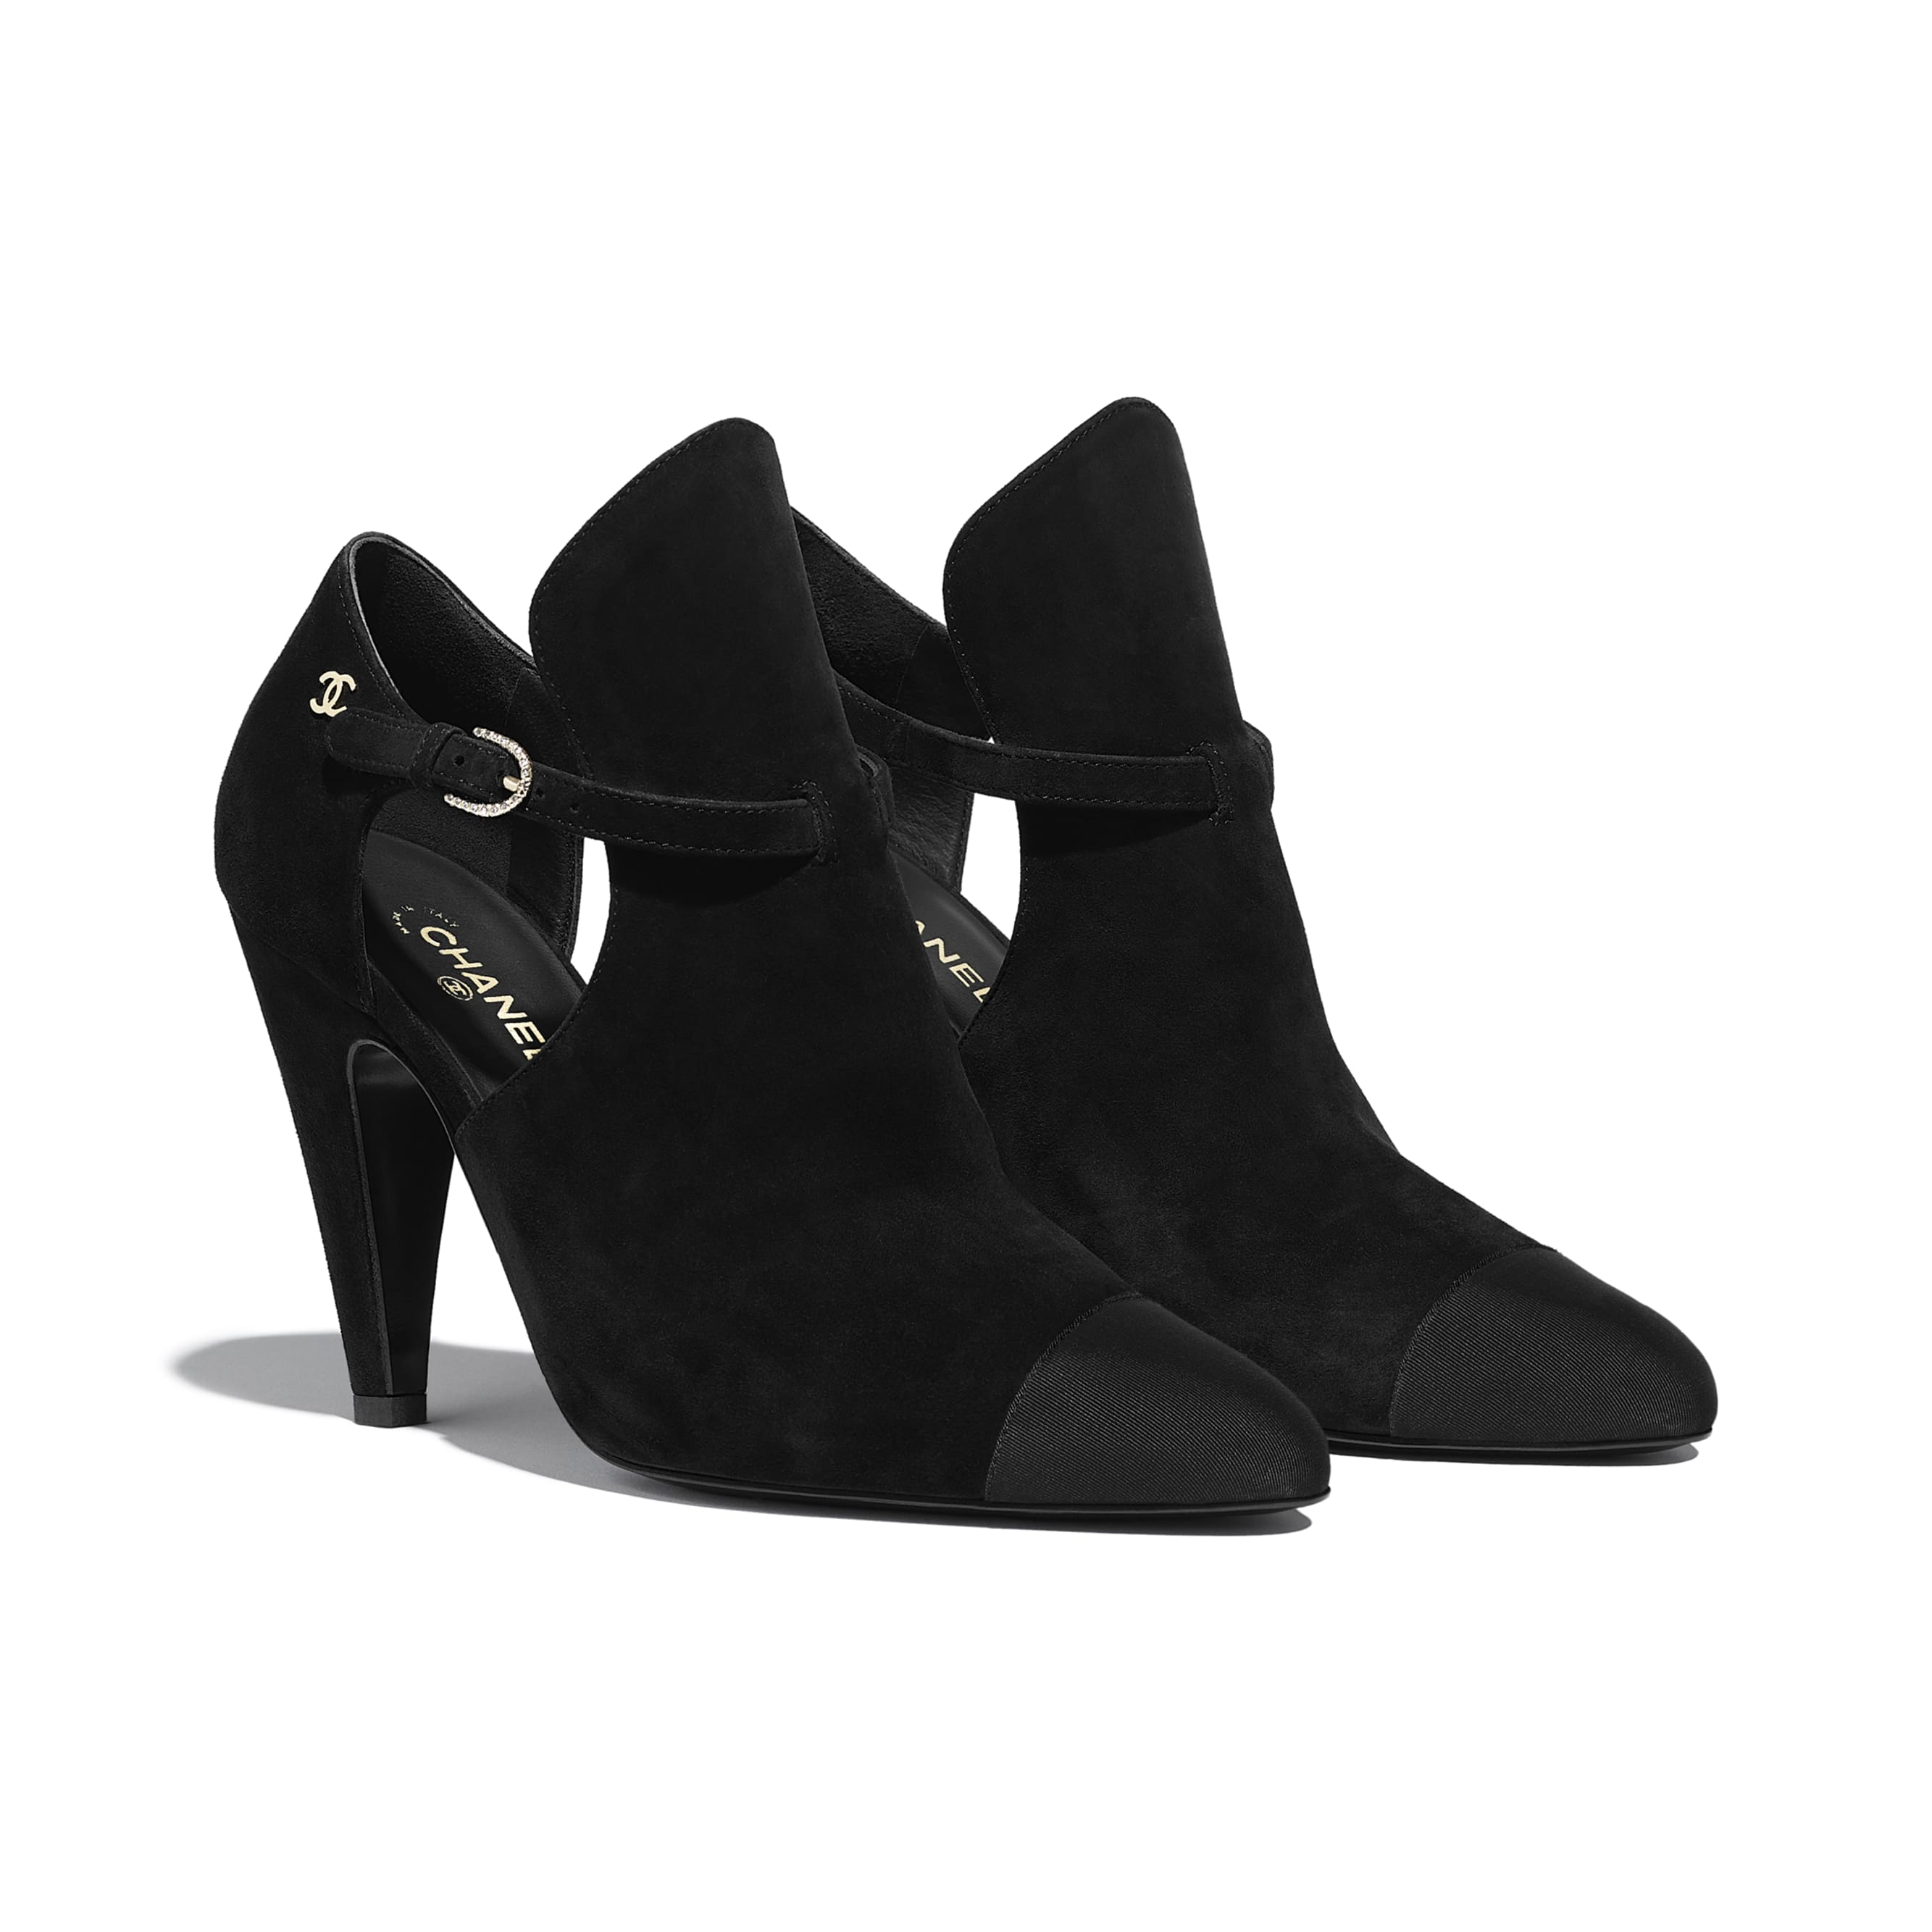 Ankle Boots - Black - Suede Calfskin & Grosgrain - CHANEL - Alternative view - see standard sized version